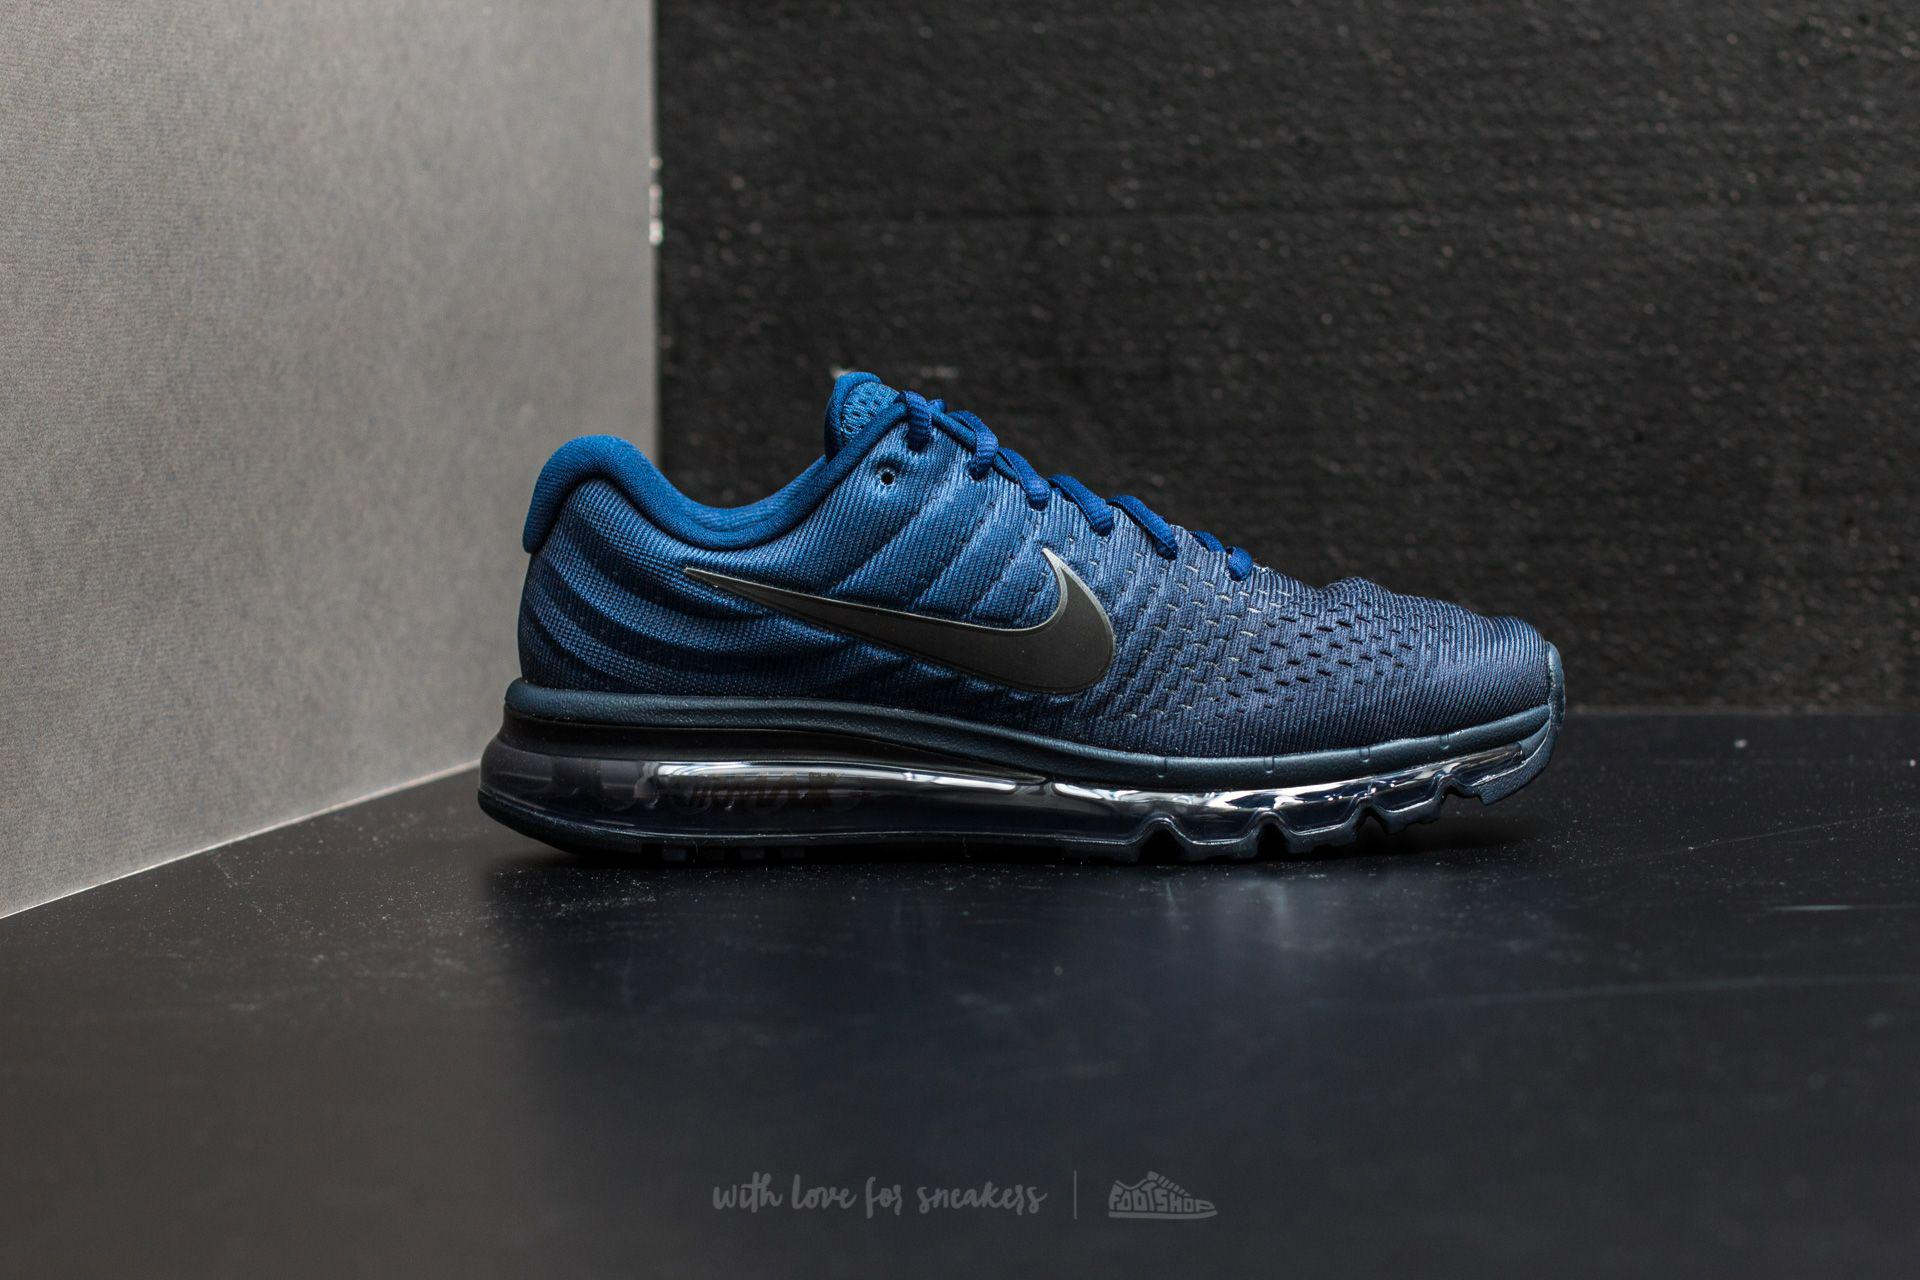 784d4c63d087f ... purchase lyst nike air max 2017 binary blue black obsidian in blue for  men be7a3 4102c